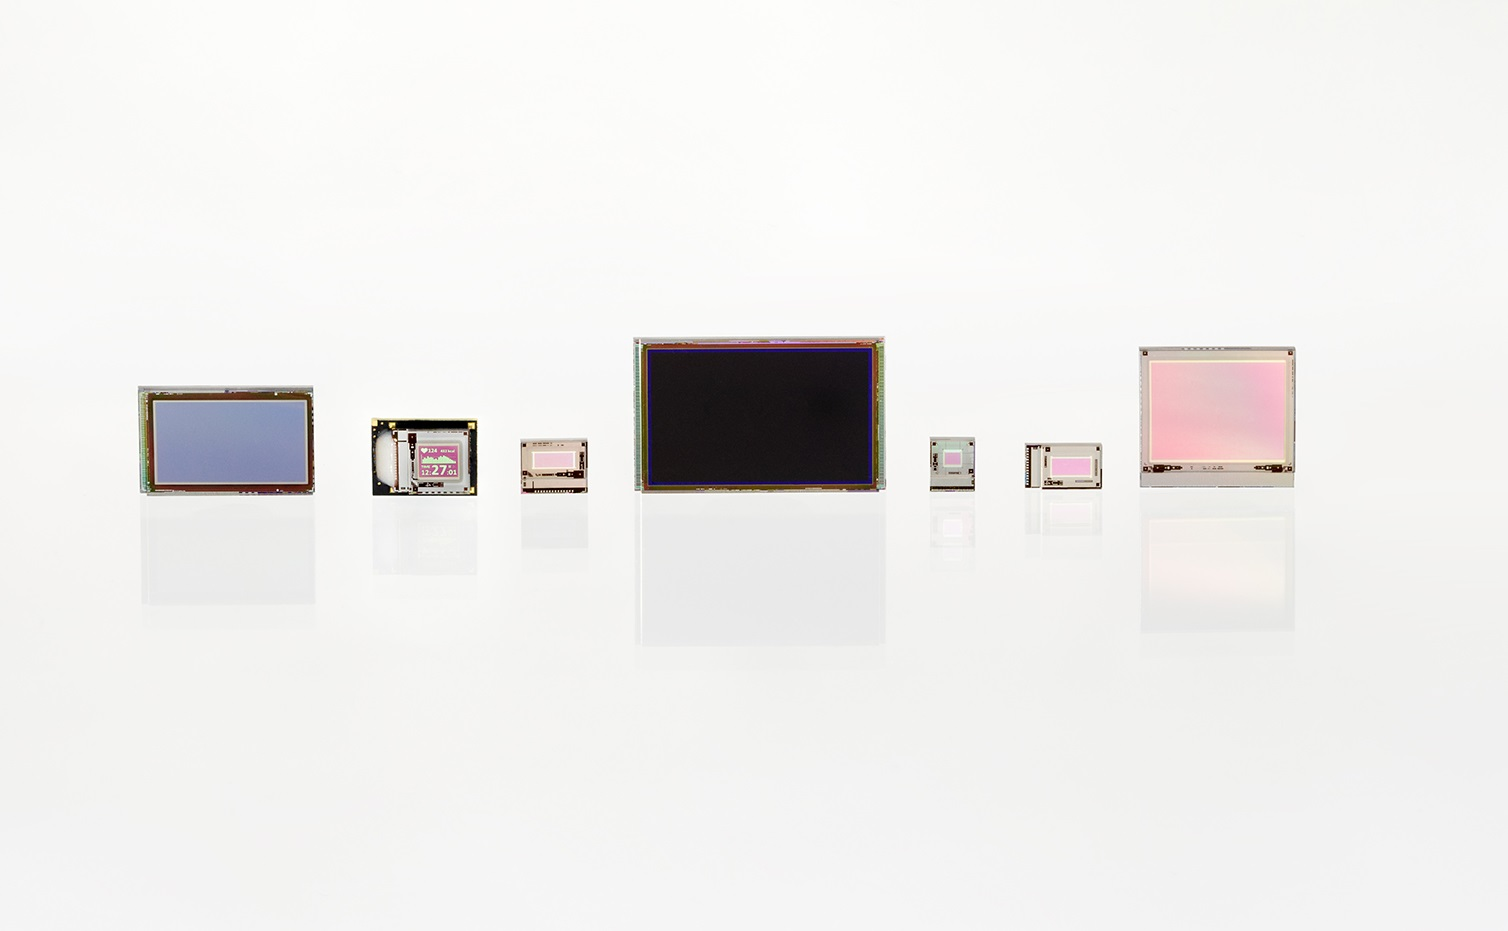 OLED microdisplays in various sizes and resolutions